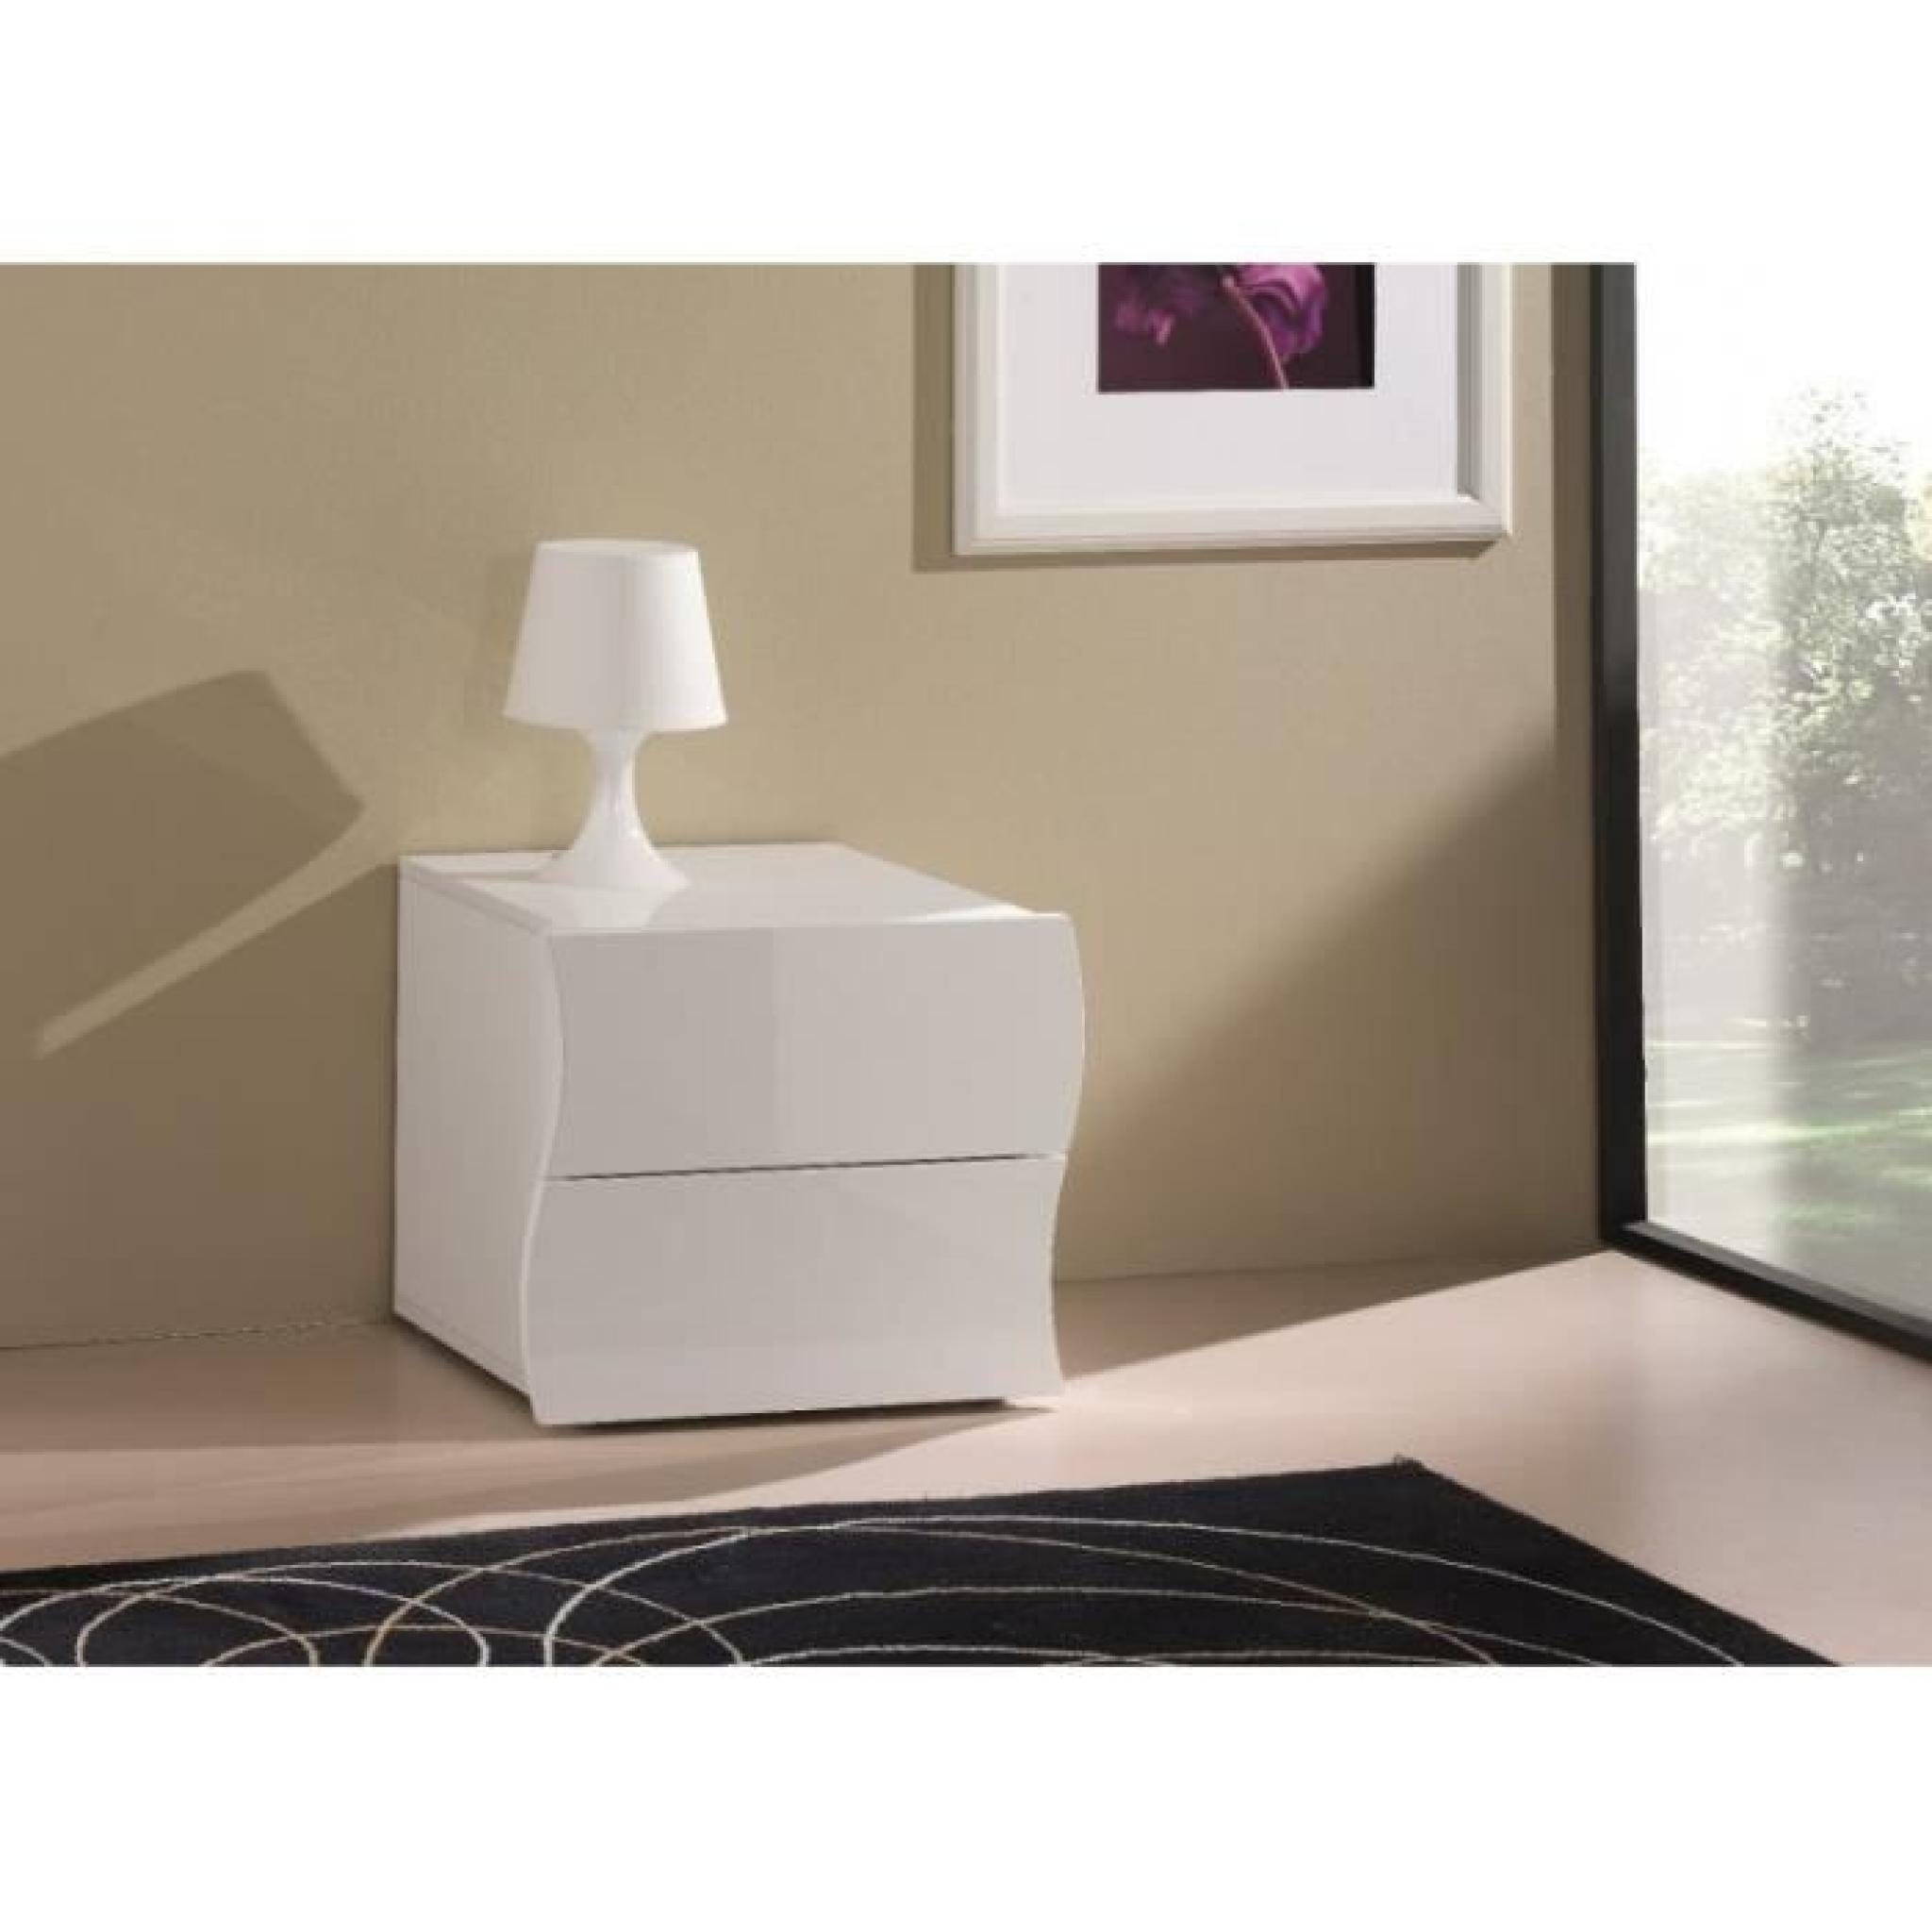 Chevet 2 tiroirs onda nanetto blanc brillant achat vente table de chevet pa - Table de chevet design laque blanc ...